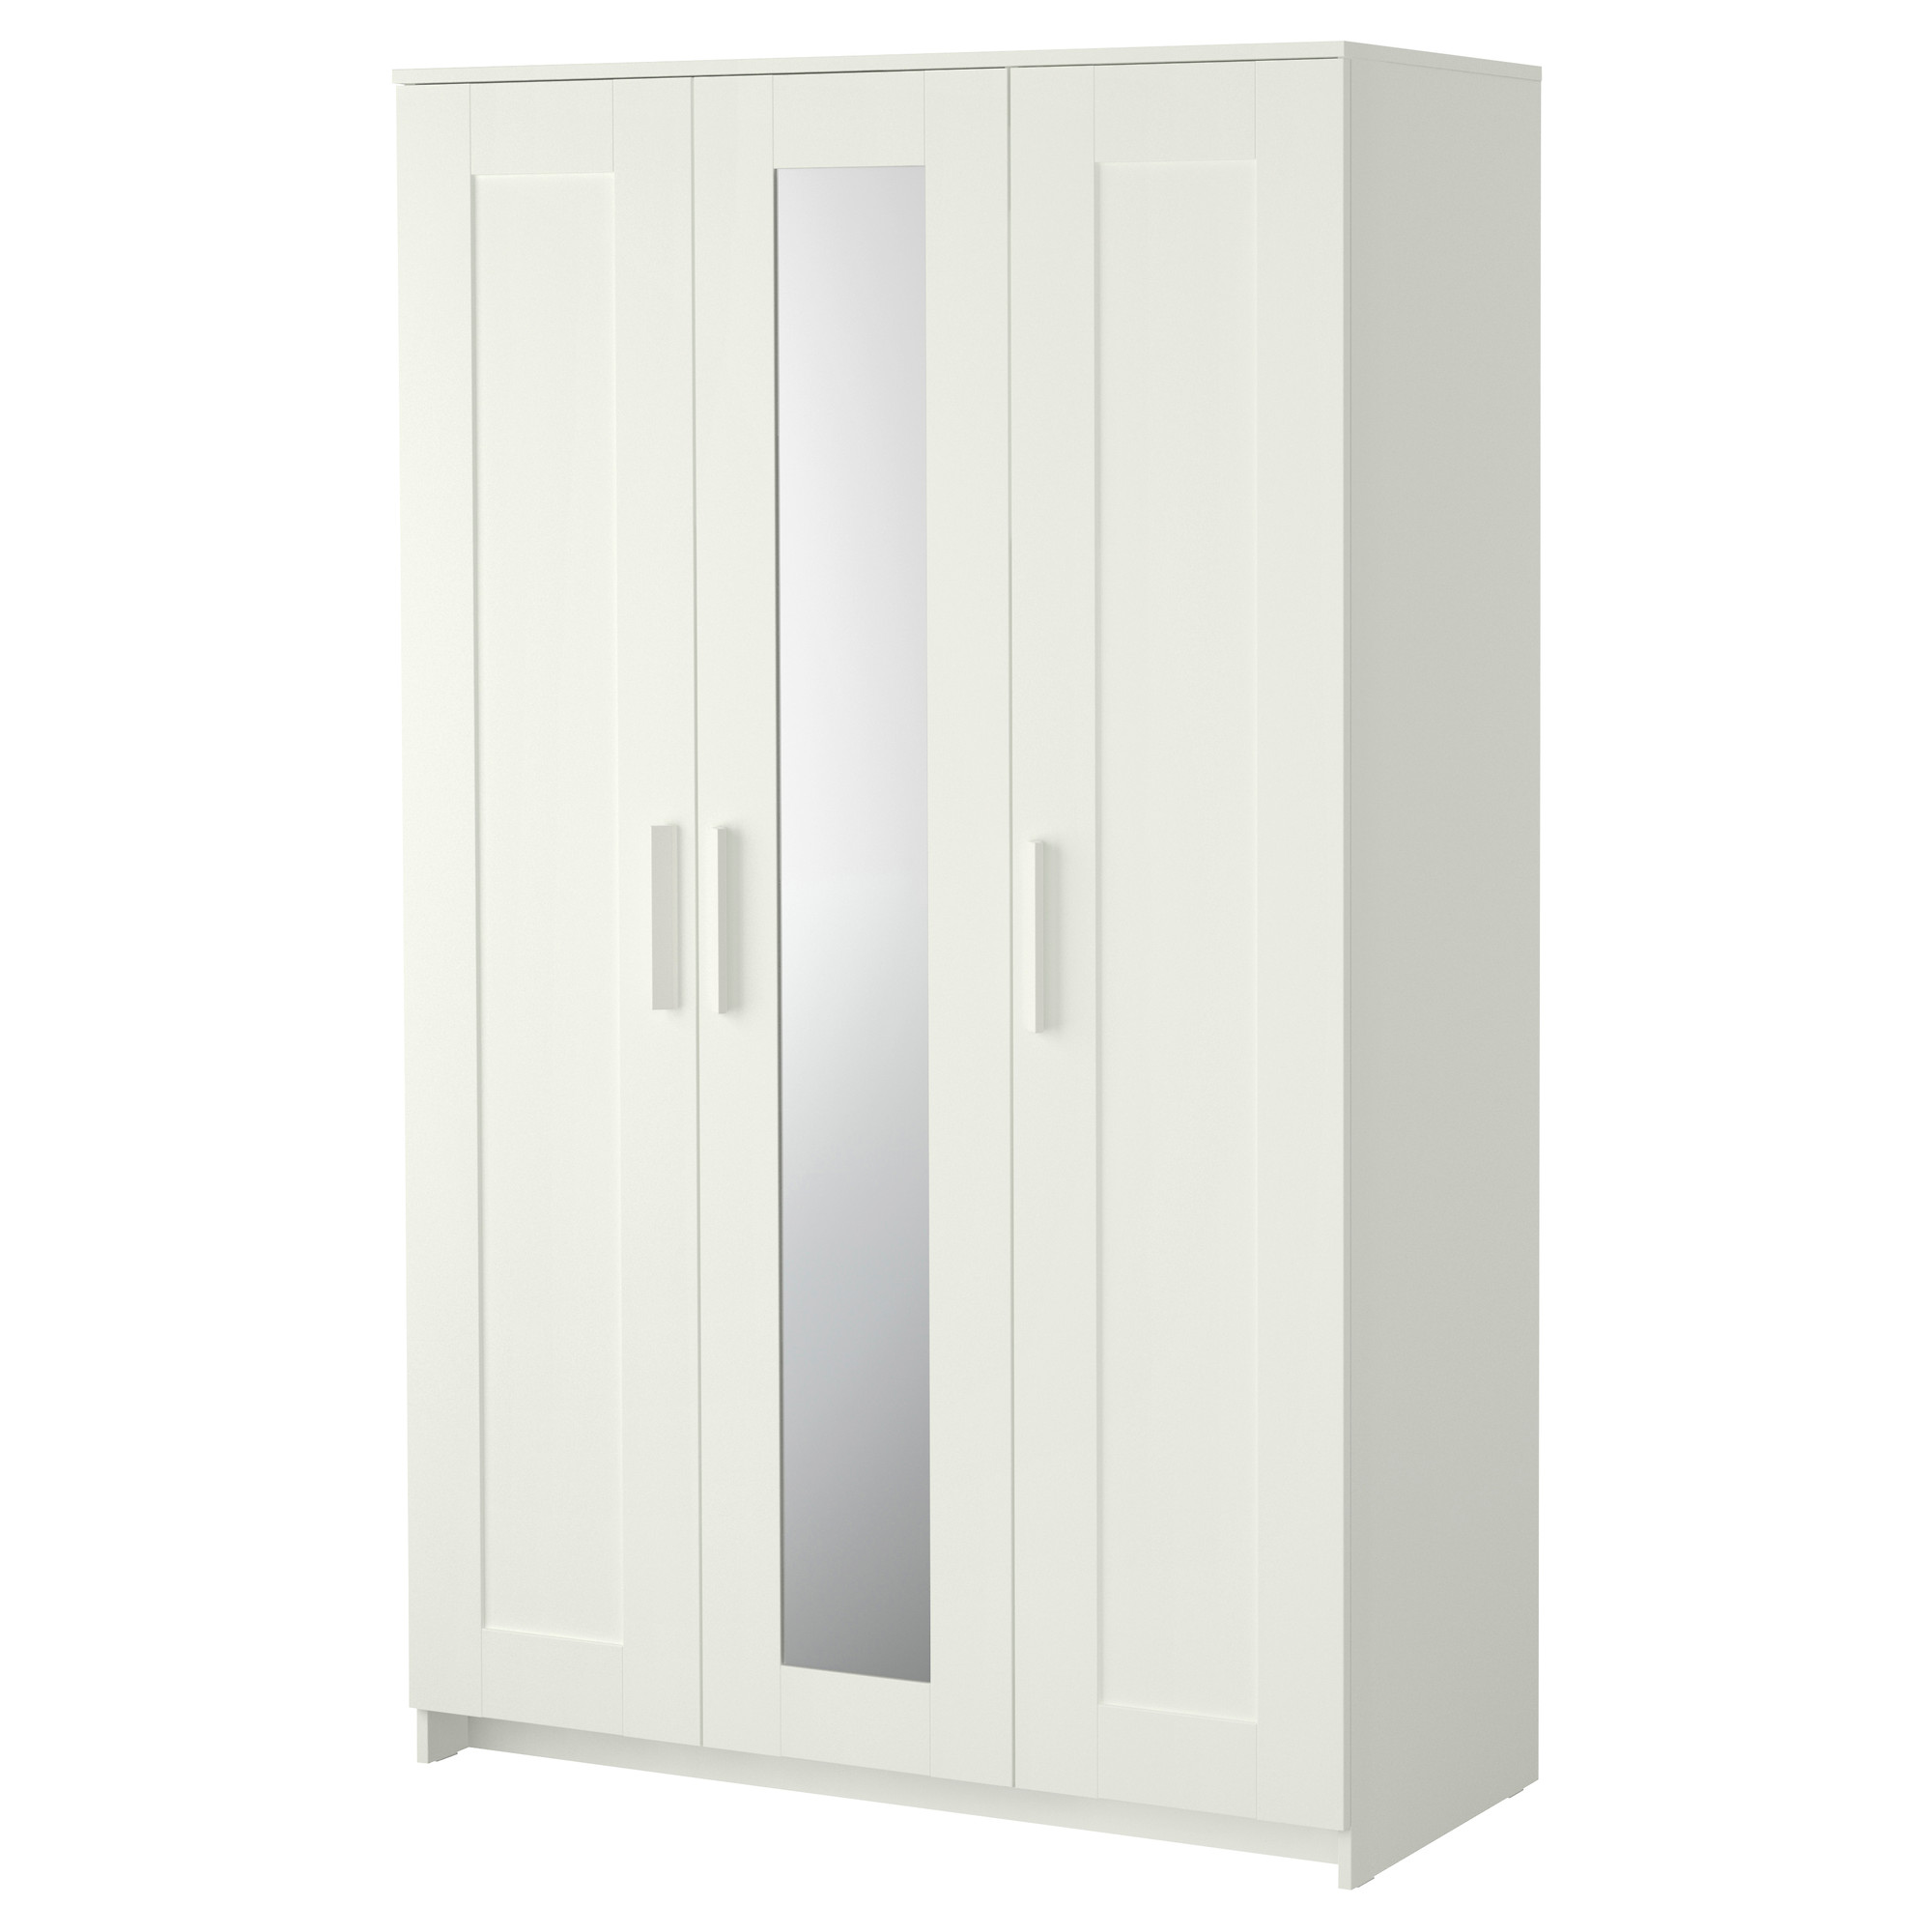 Ikea Armoire Closet | Wardrobe Armoire With Drawers | Armoire Ikea